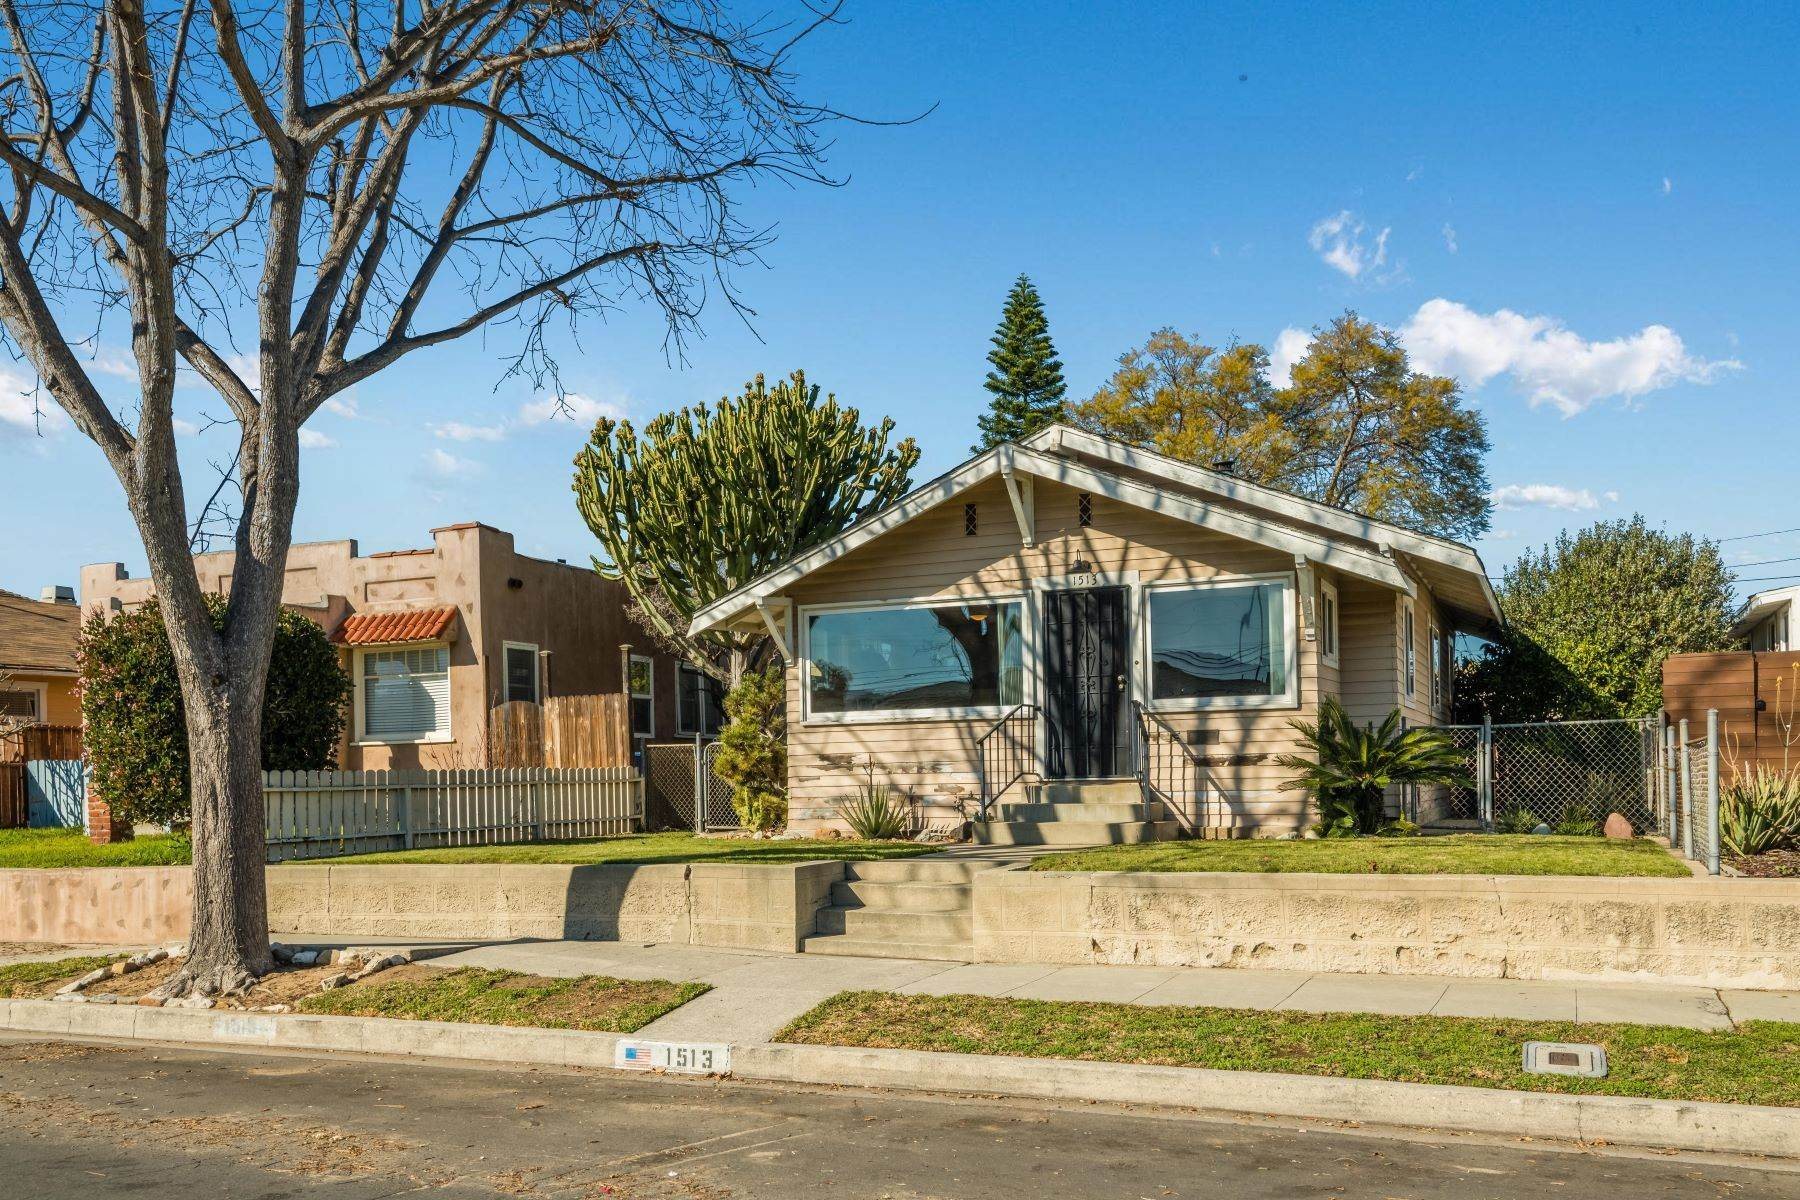 Single Family Homes のために 売買 アット 1513 256th Street West, Los Angeles, CA 90710 1513 256th Street Harbor City, カリフォルニア 90710 アメリカ